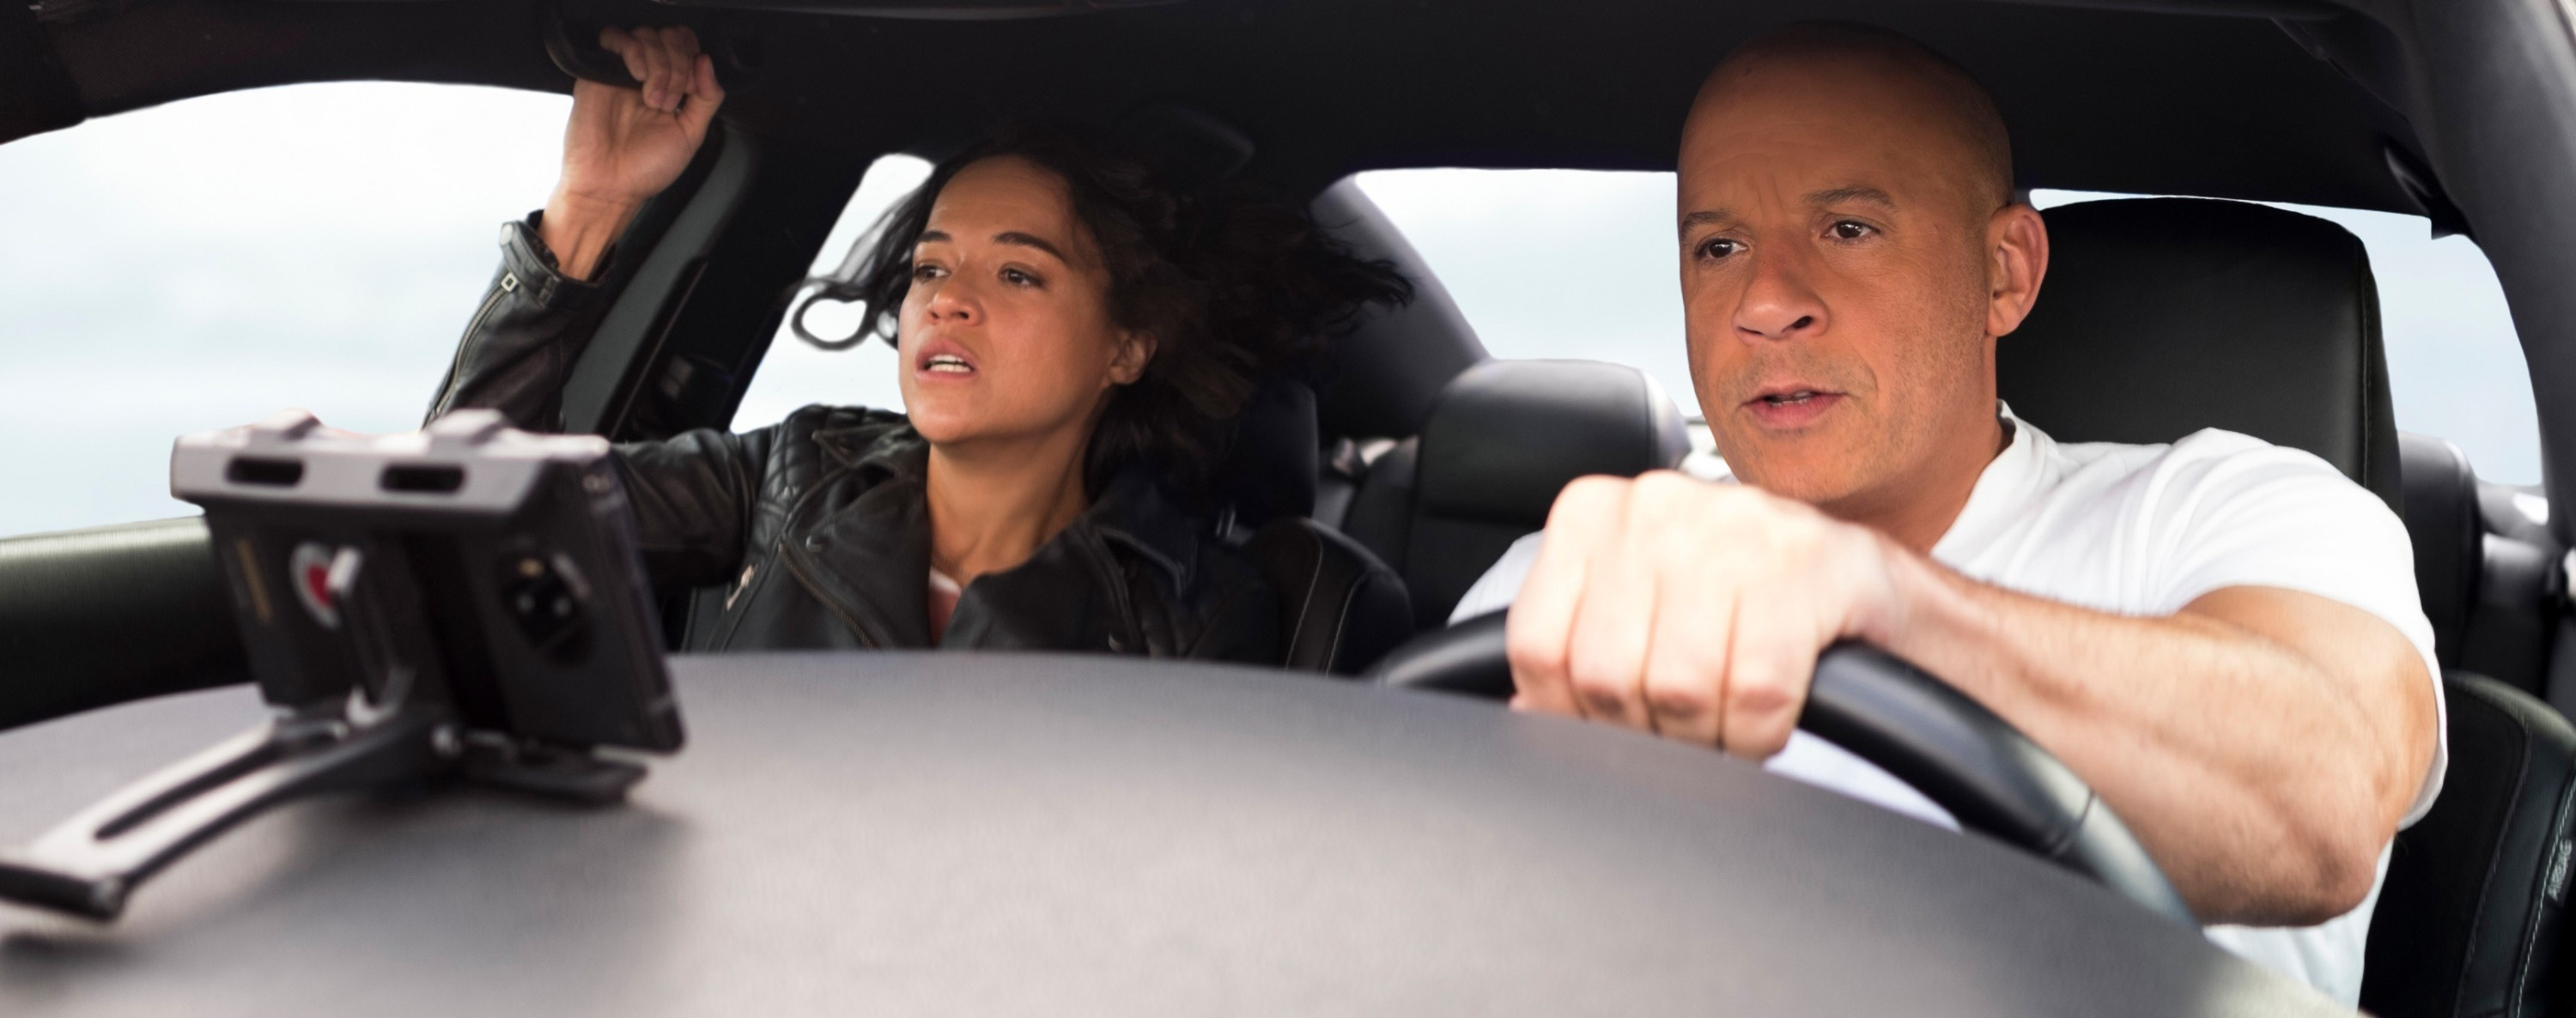 from left is Michelle Rodriguez and on the right Vin Diesel driving in a car for the movie fast and furious 9